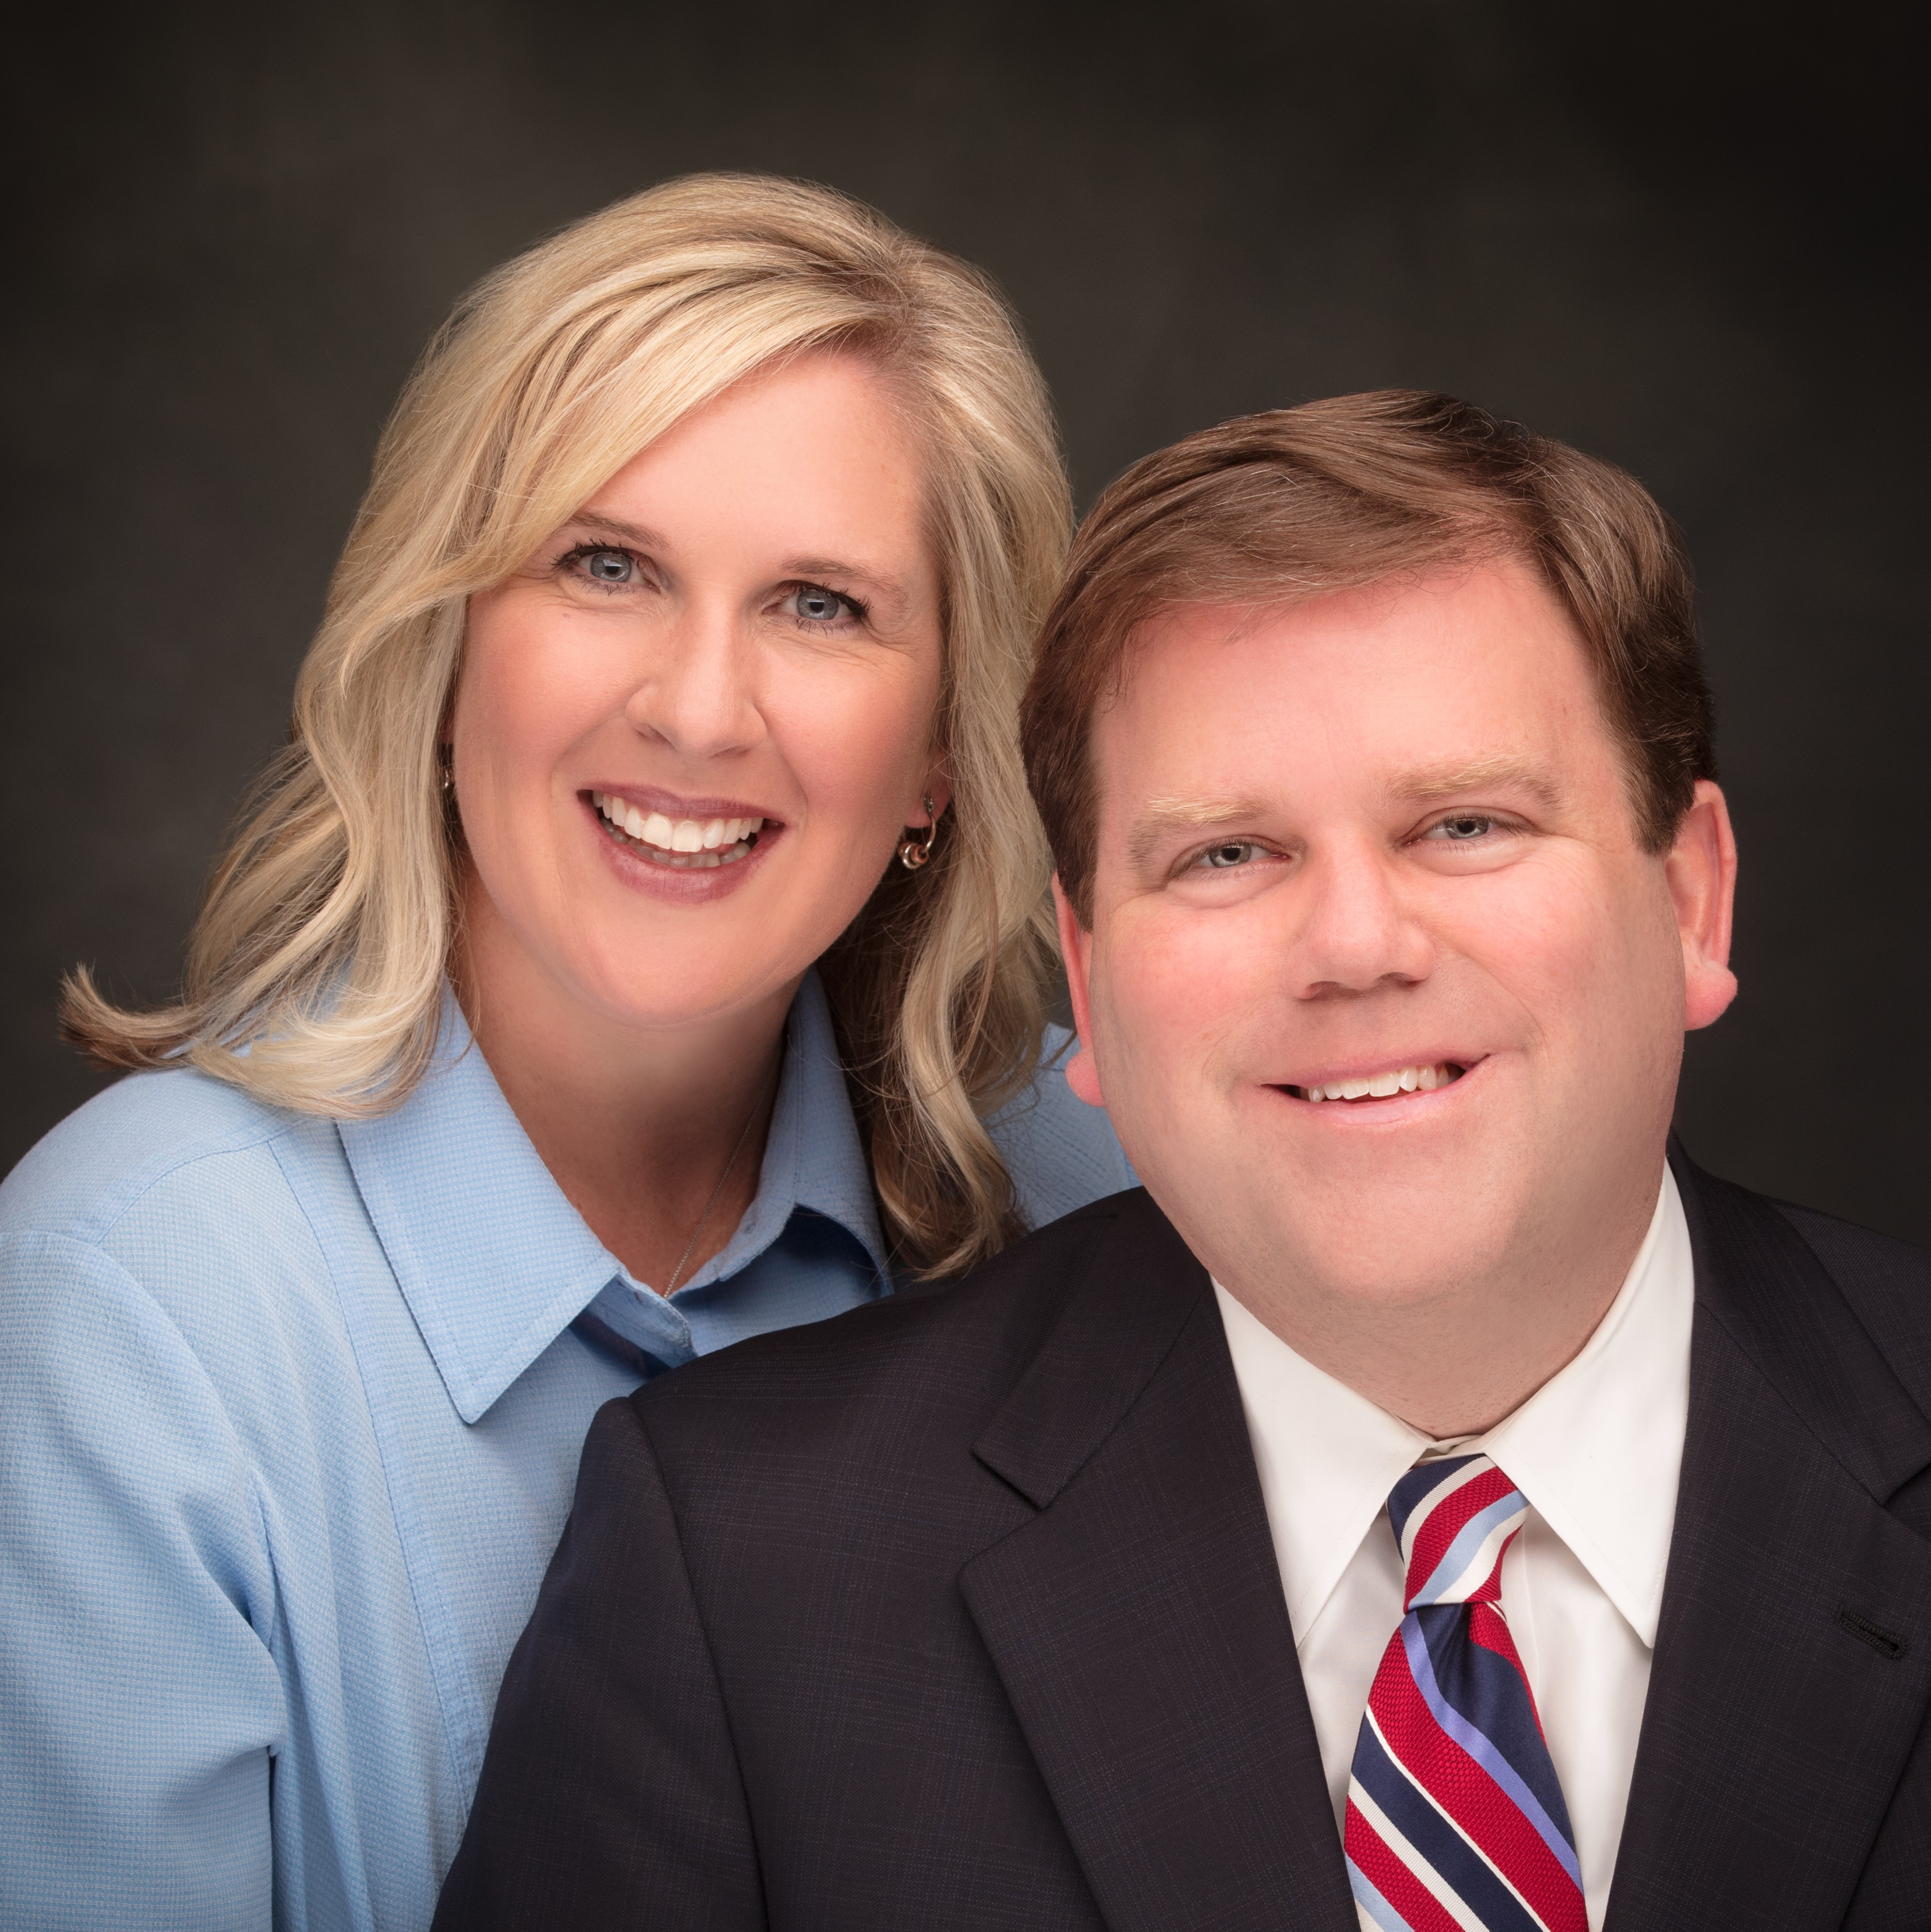 Shelly A. and Reid L. Neilson